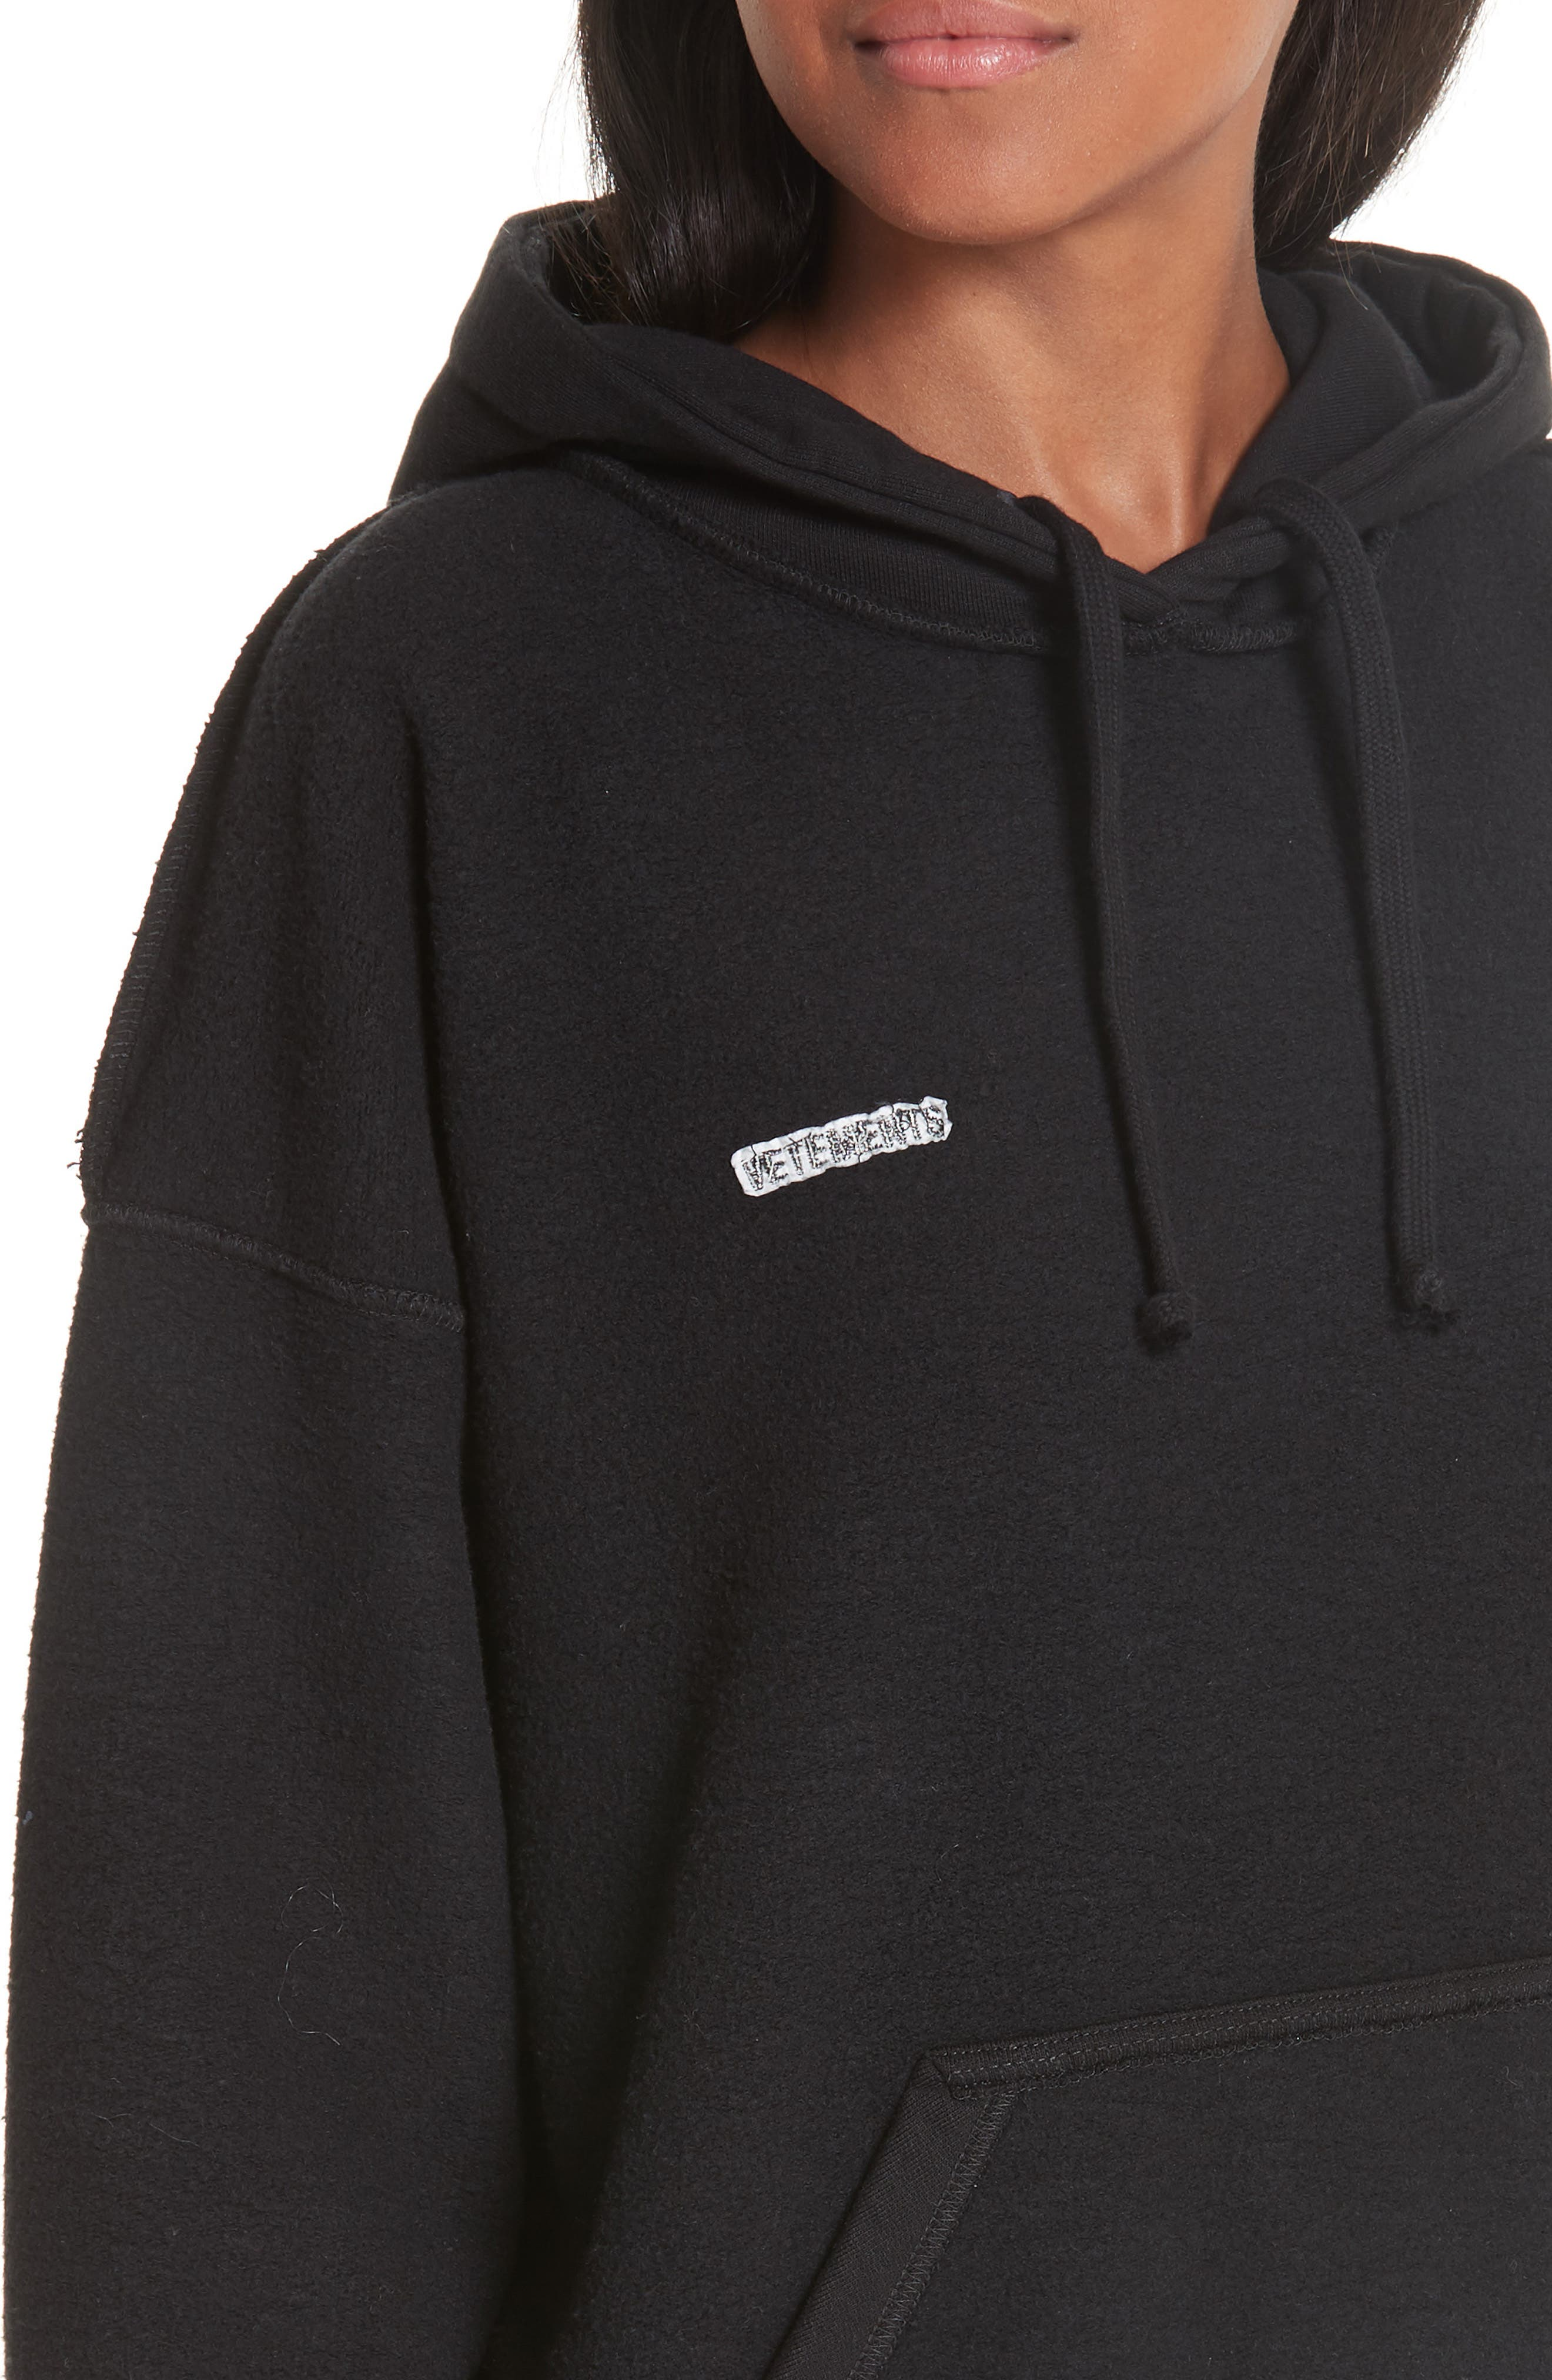 Inside-Out Hoodie,                             Alternate thumbnail 4, color,                             BLACK